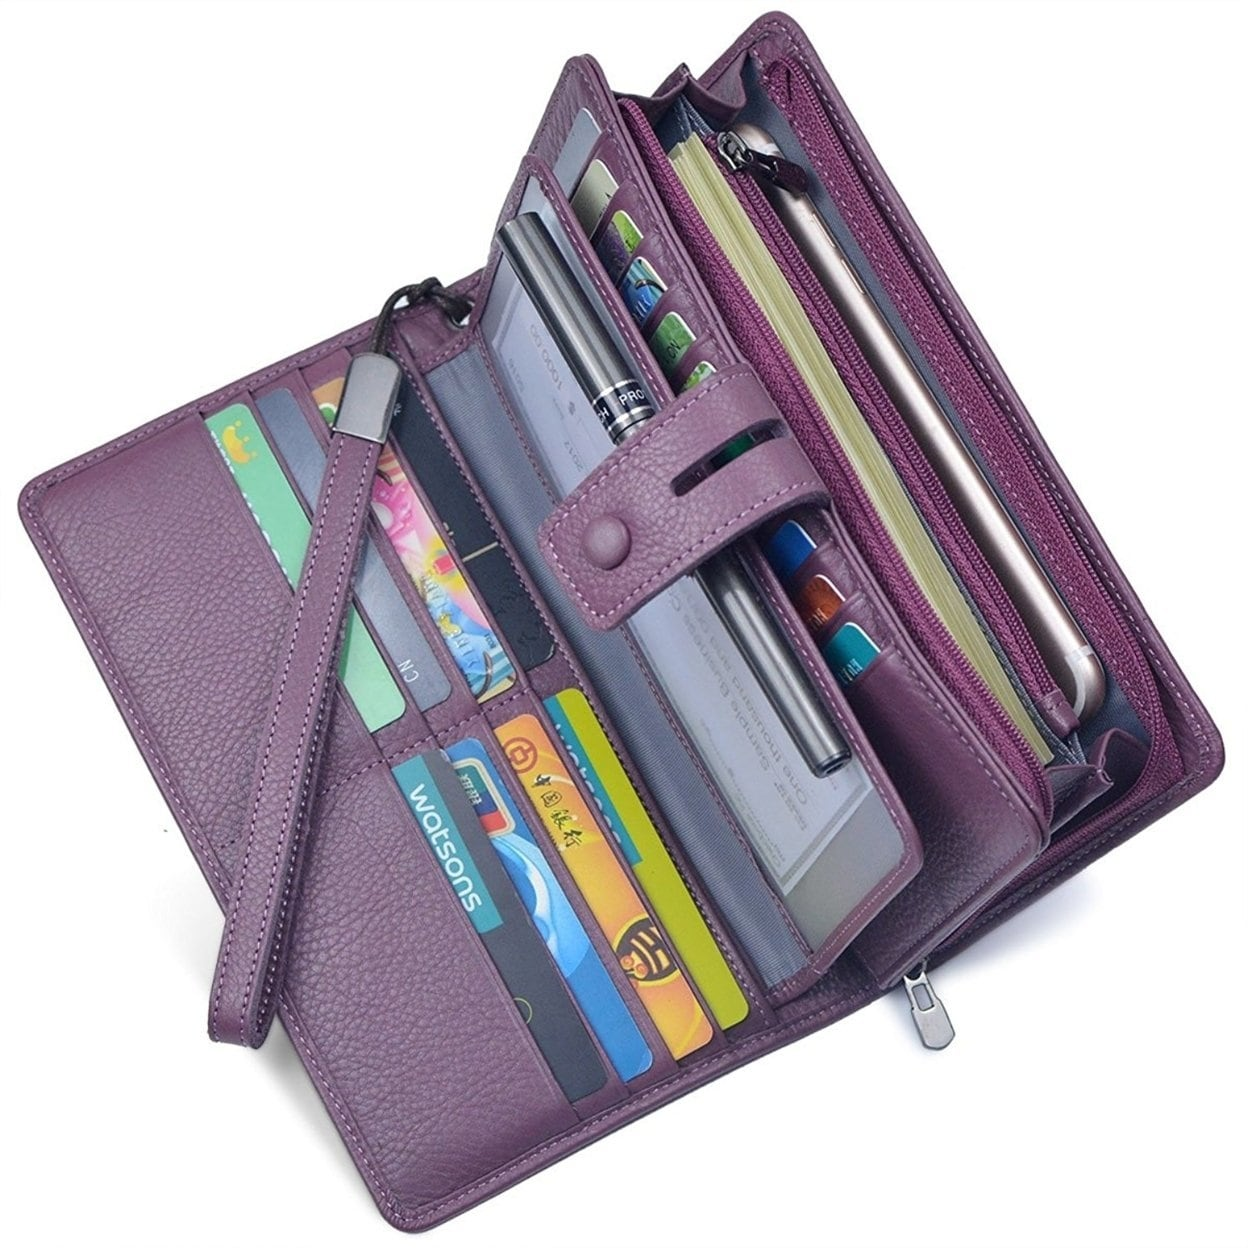 3a9a9e163fa Buy Women's Wallets Online at Overstock | Our Best Wallets Deals